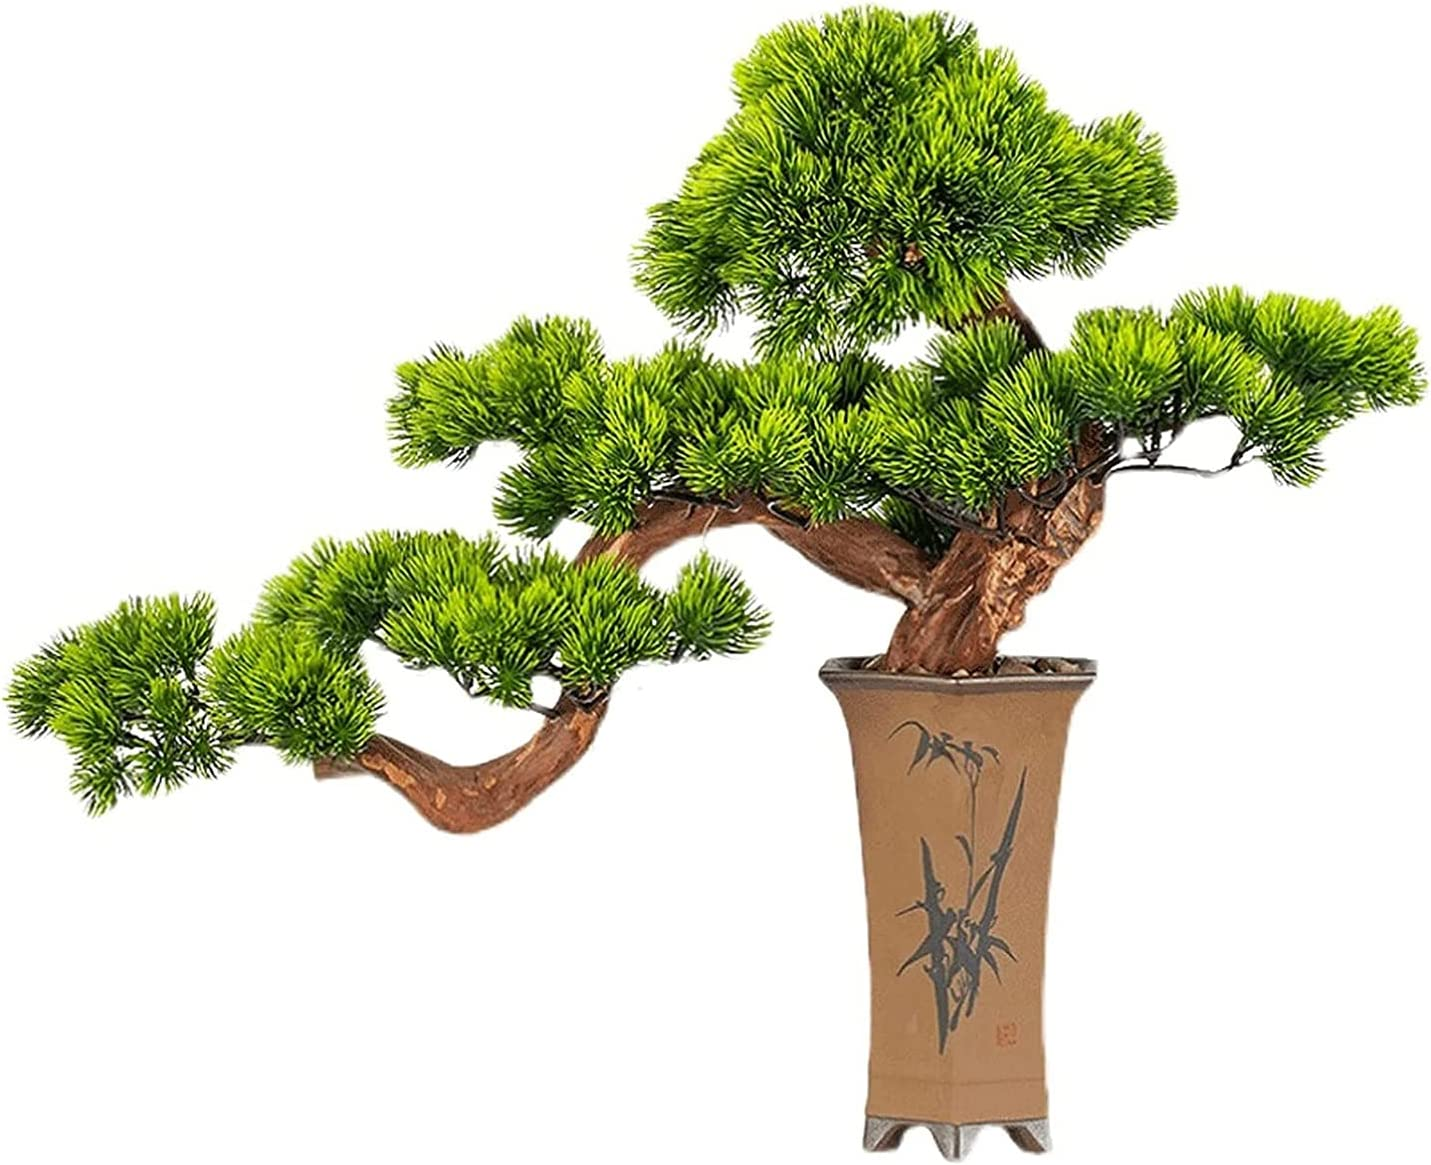 DSWHM Artificial Sales for sale Bonsai Tree Simulation Potted Plant Decora Outlet ☆ Free Shipping DIY